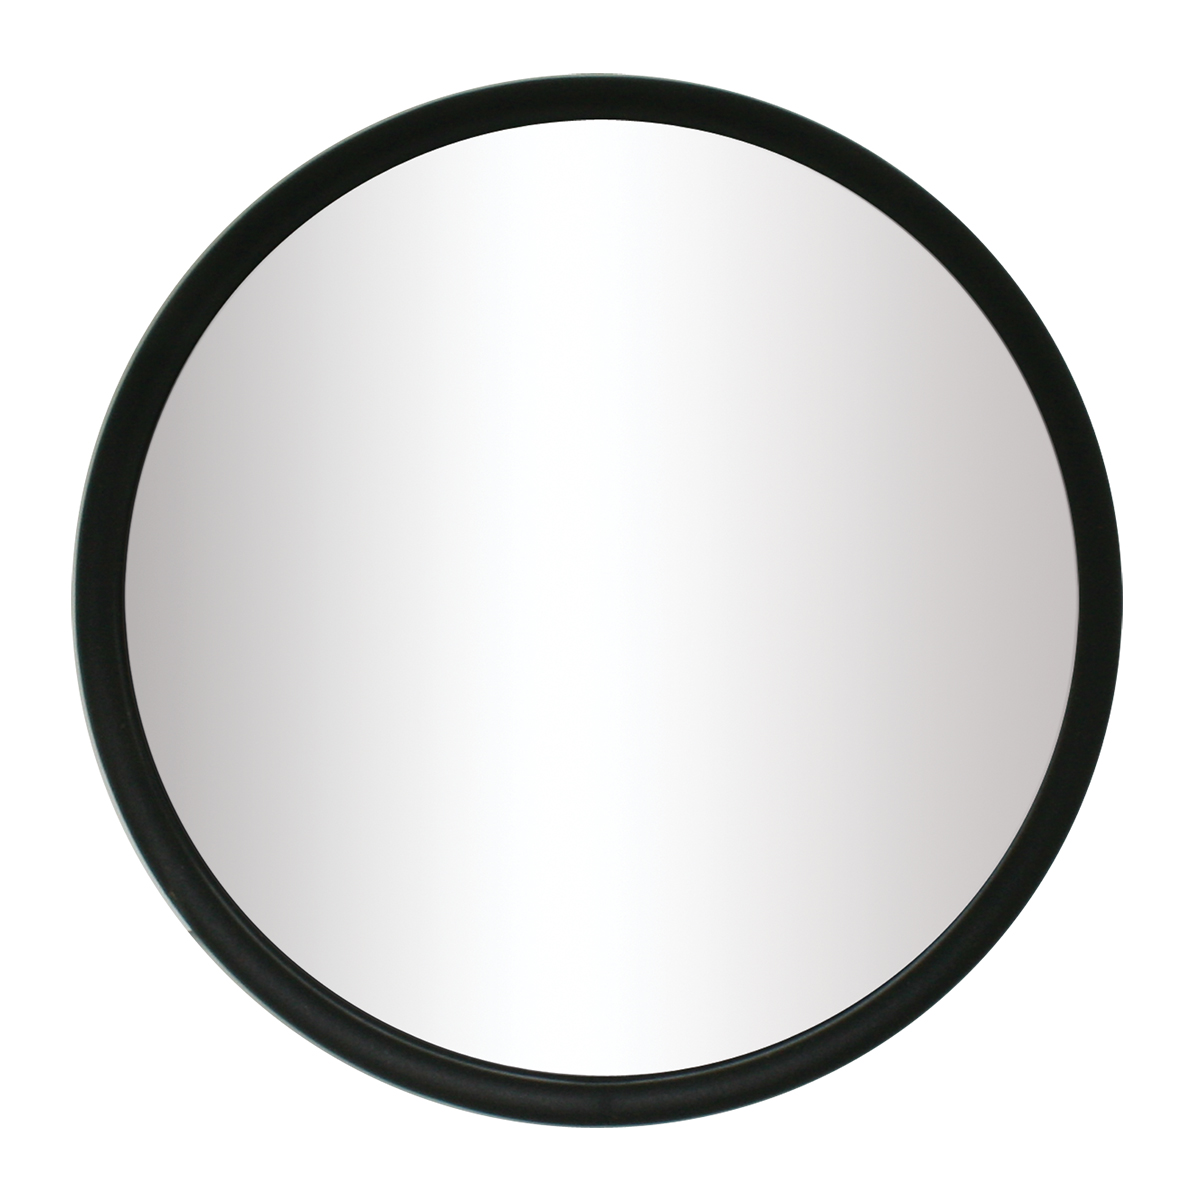 Convex Blind Spot Mirrors with Center Mount